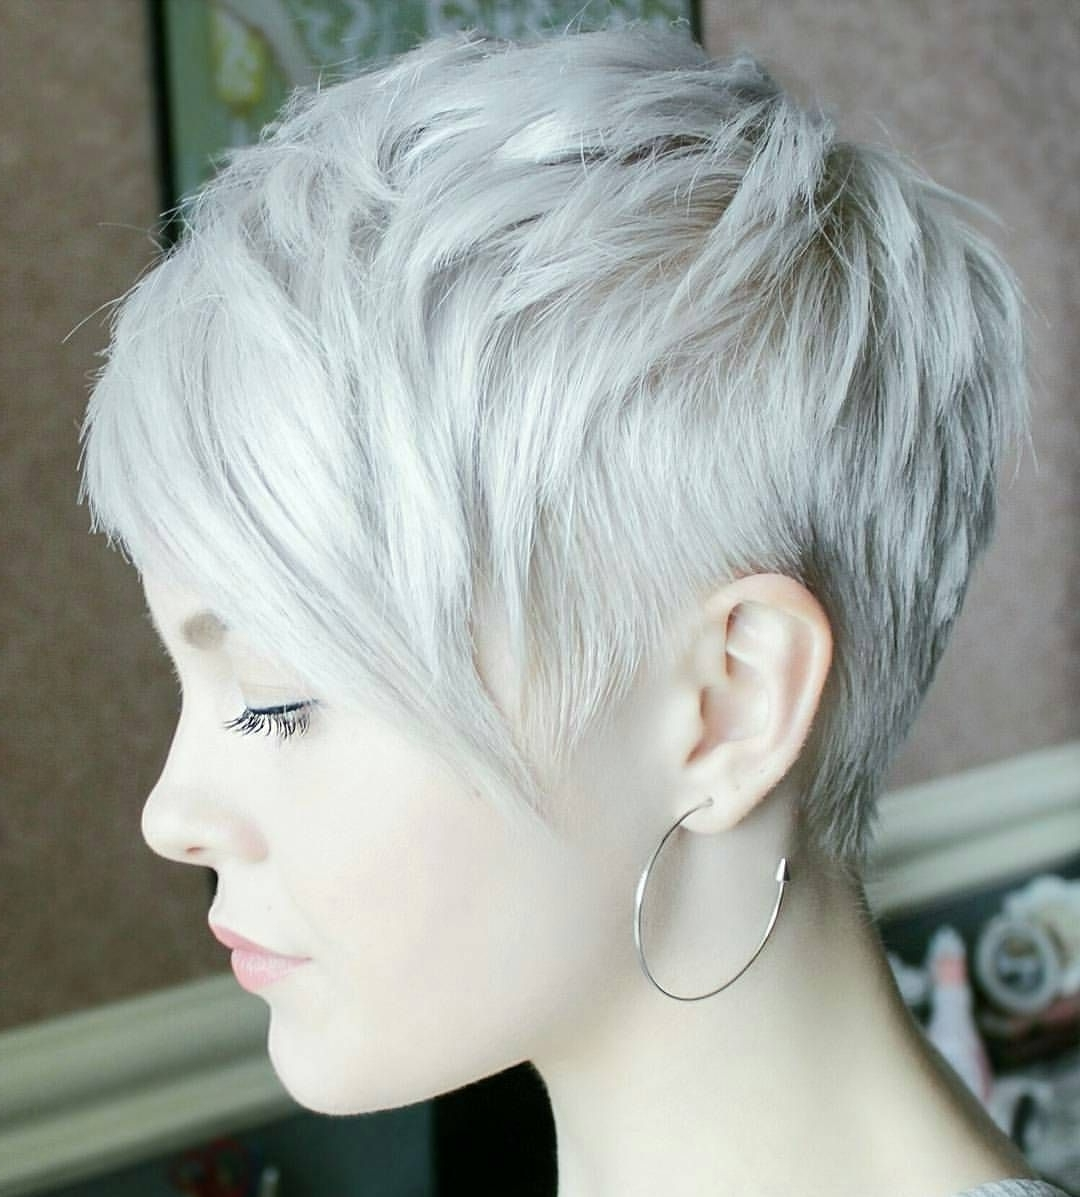 50 Trendsetting Short And Long Pixie Haircut Styles — Cutest Of Them Inside Latest Short Silver Crop Blonde Hairstyles (View 4 of 20)